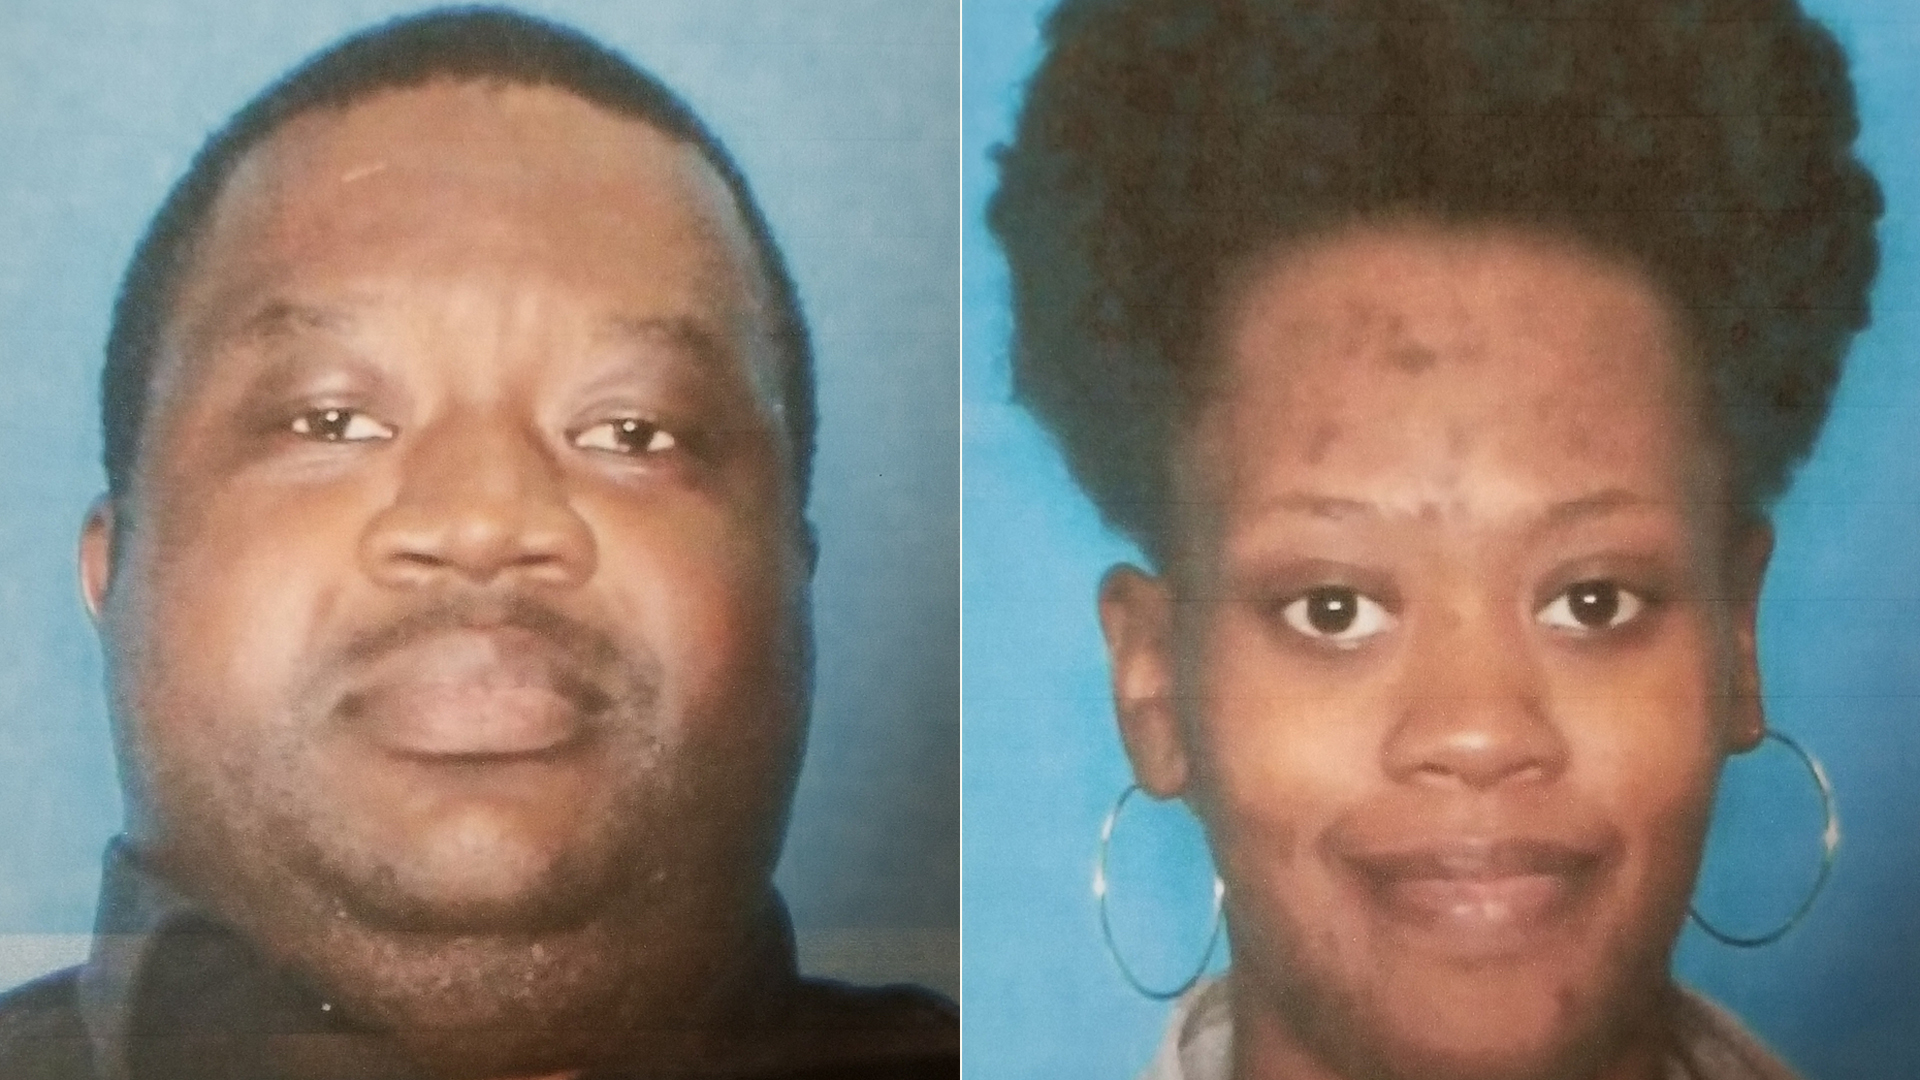 From left to right: Shadrick Jones, 33, and Iyehesa Todd, 26, are seen in photos released by the Saint Gabriel Police Department in Louisiana.